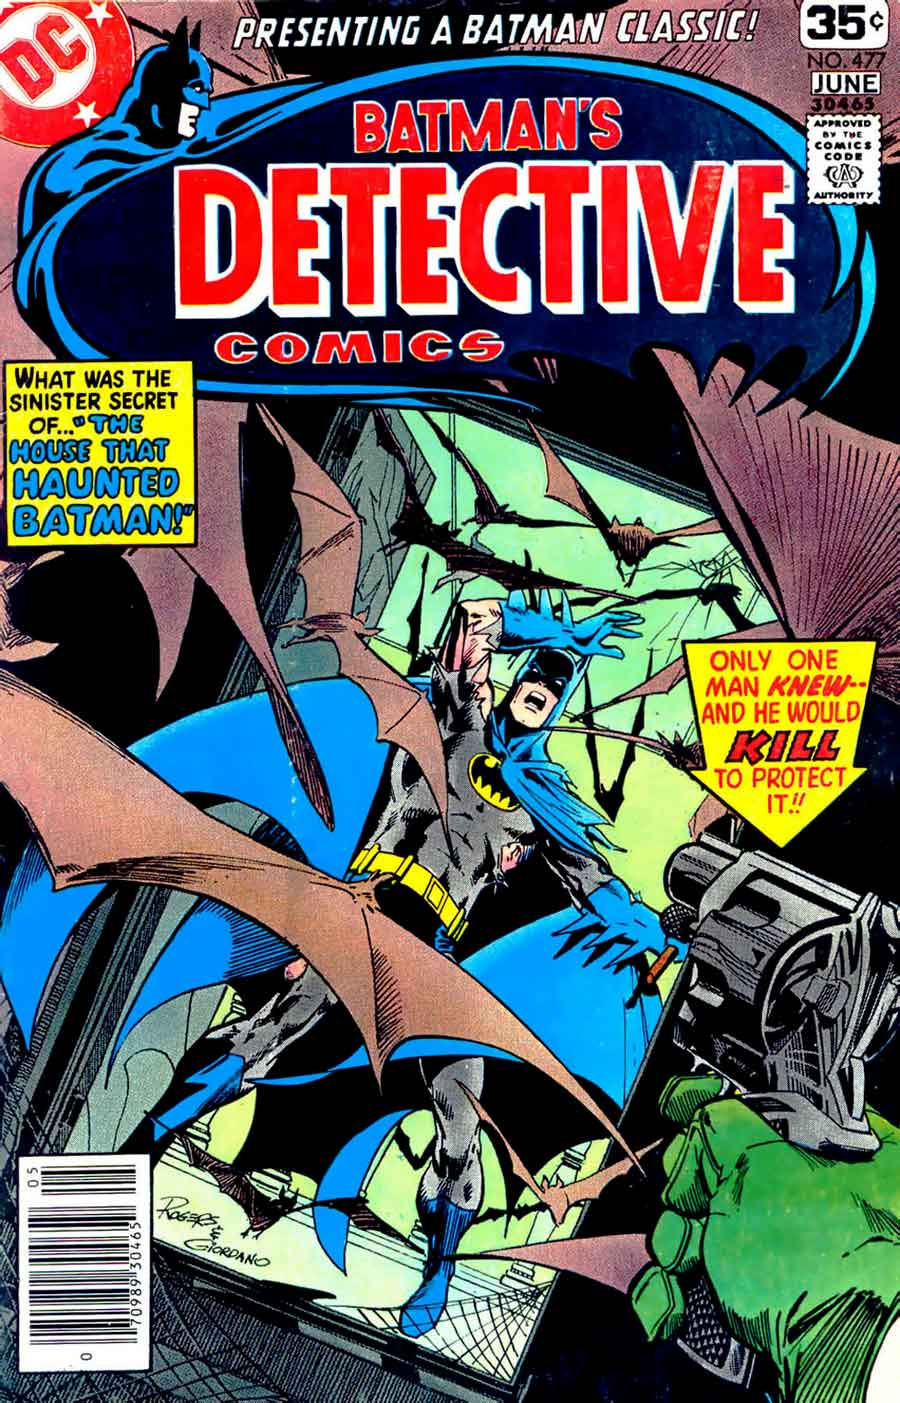 Detective Comics v1 #477 dc comic book cover art by Marshall Rogers